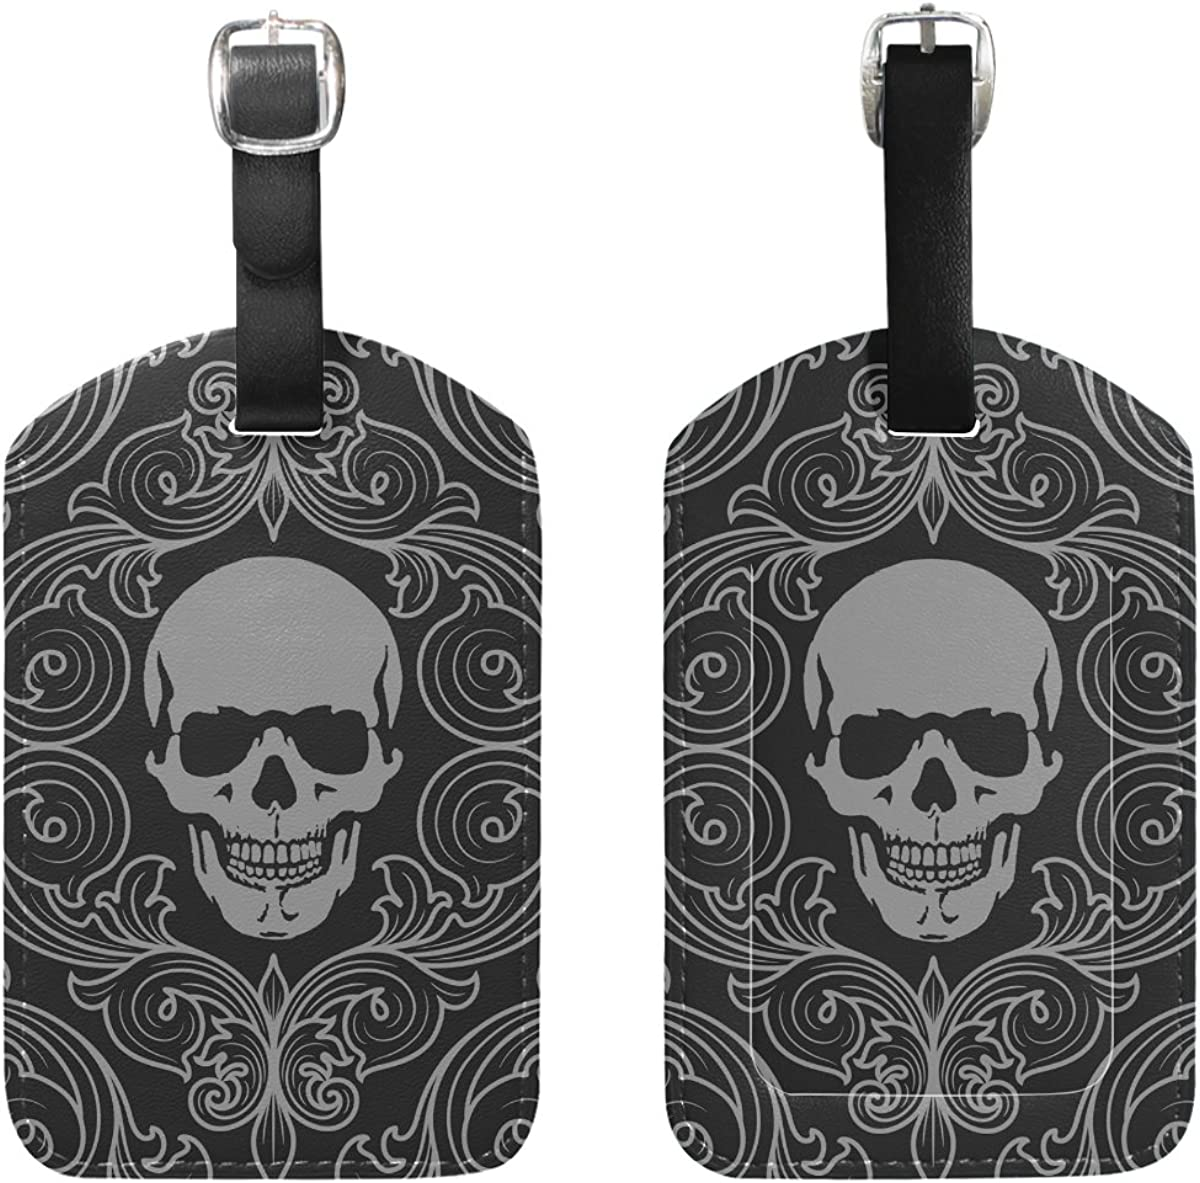 2 PCS LORVIES Skull Pattern Luggage Tags Travel Labels Tag Name Card Holder for Baggage Suitcase Bag Backpacks